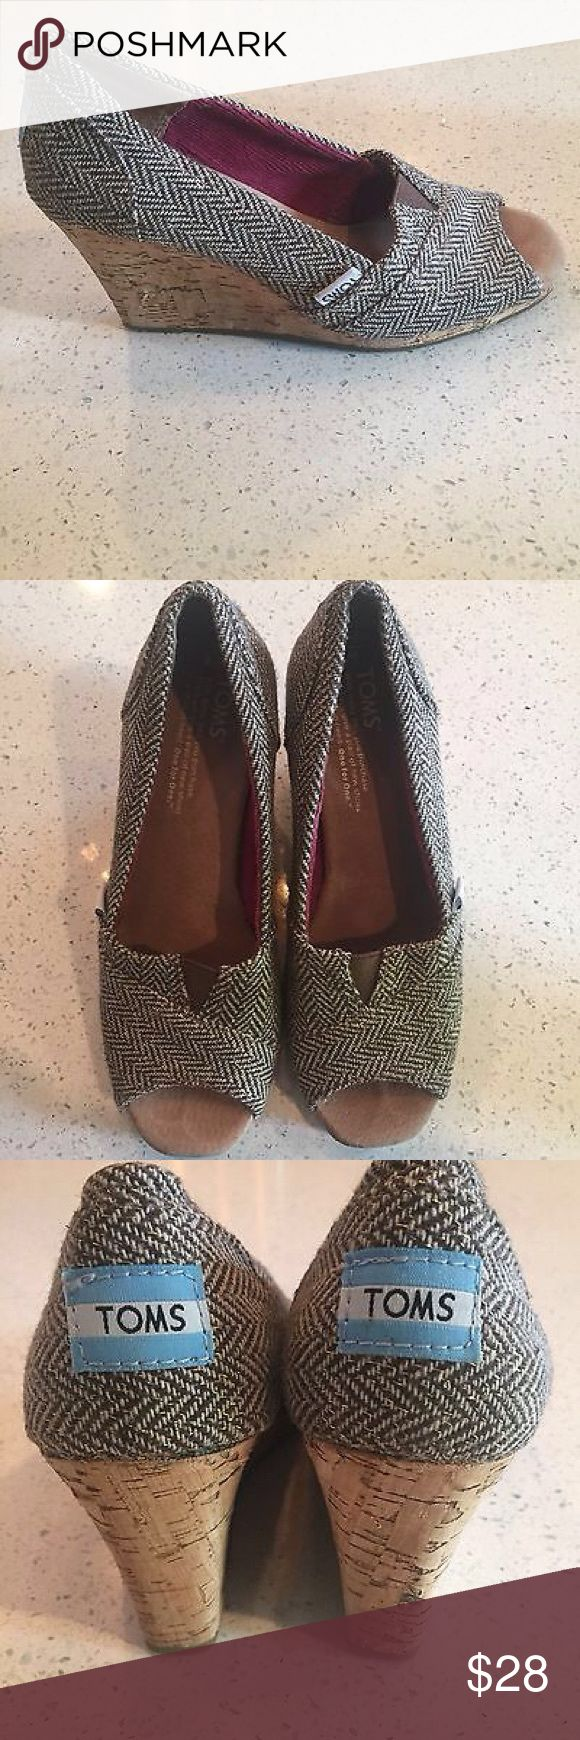 Toms Espadrille Wedge Shoes Vegan Peep Toe SZ W 6 Gently used  size W 6 gray herringbone with metallic gold thread TOMS Shoes Wedges